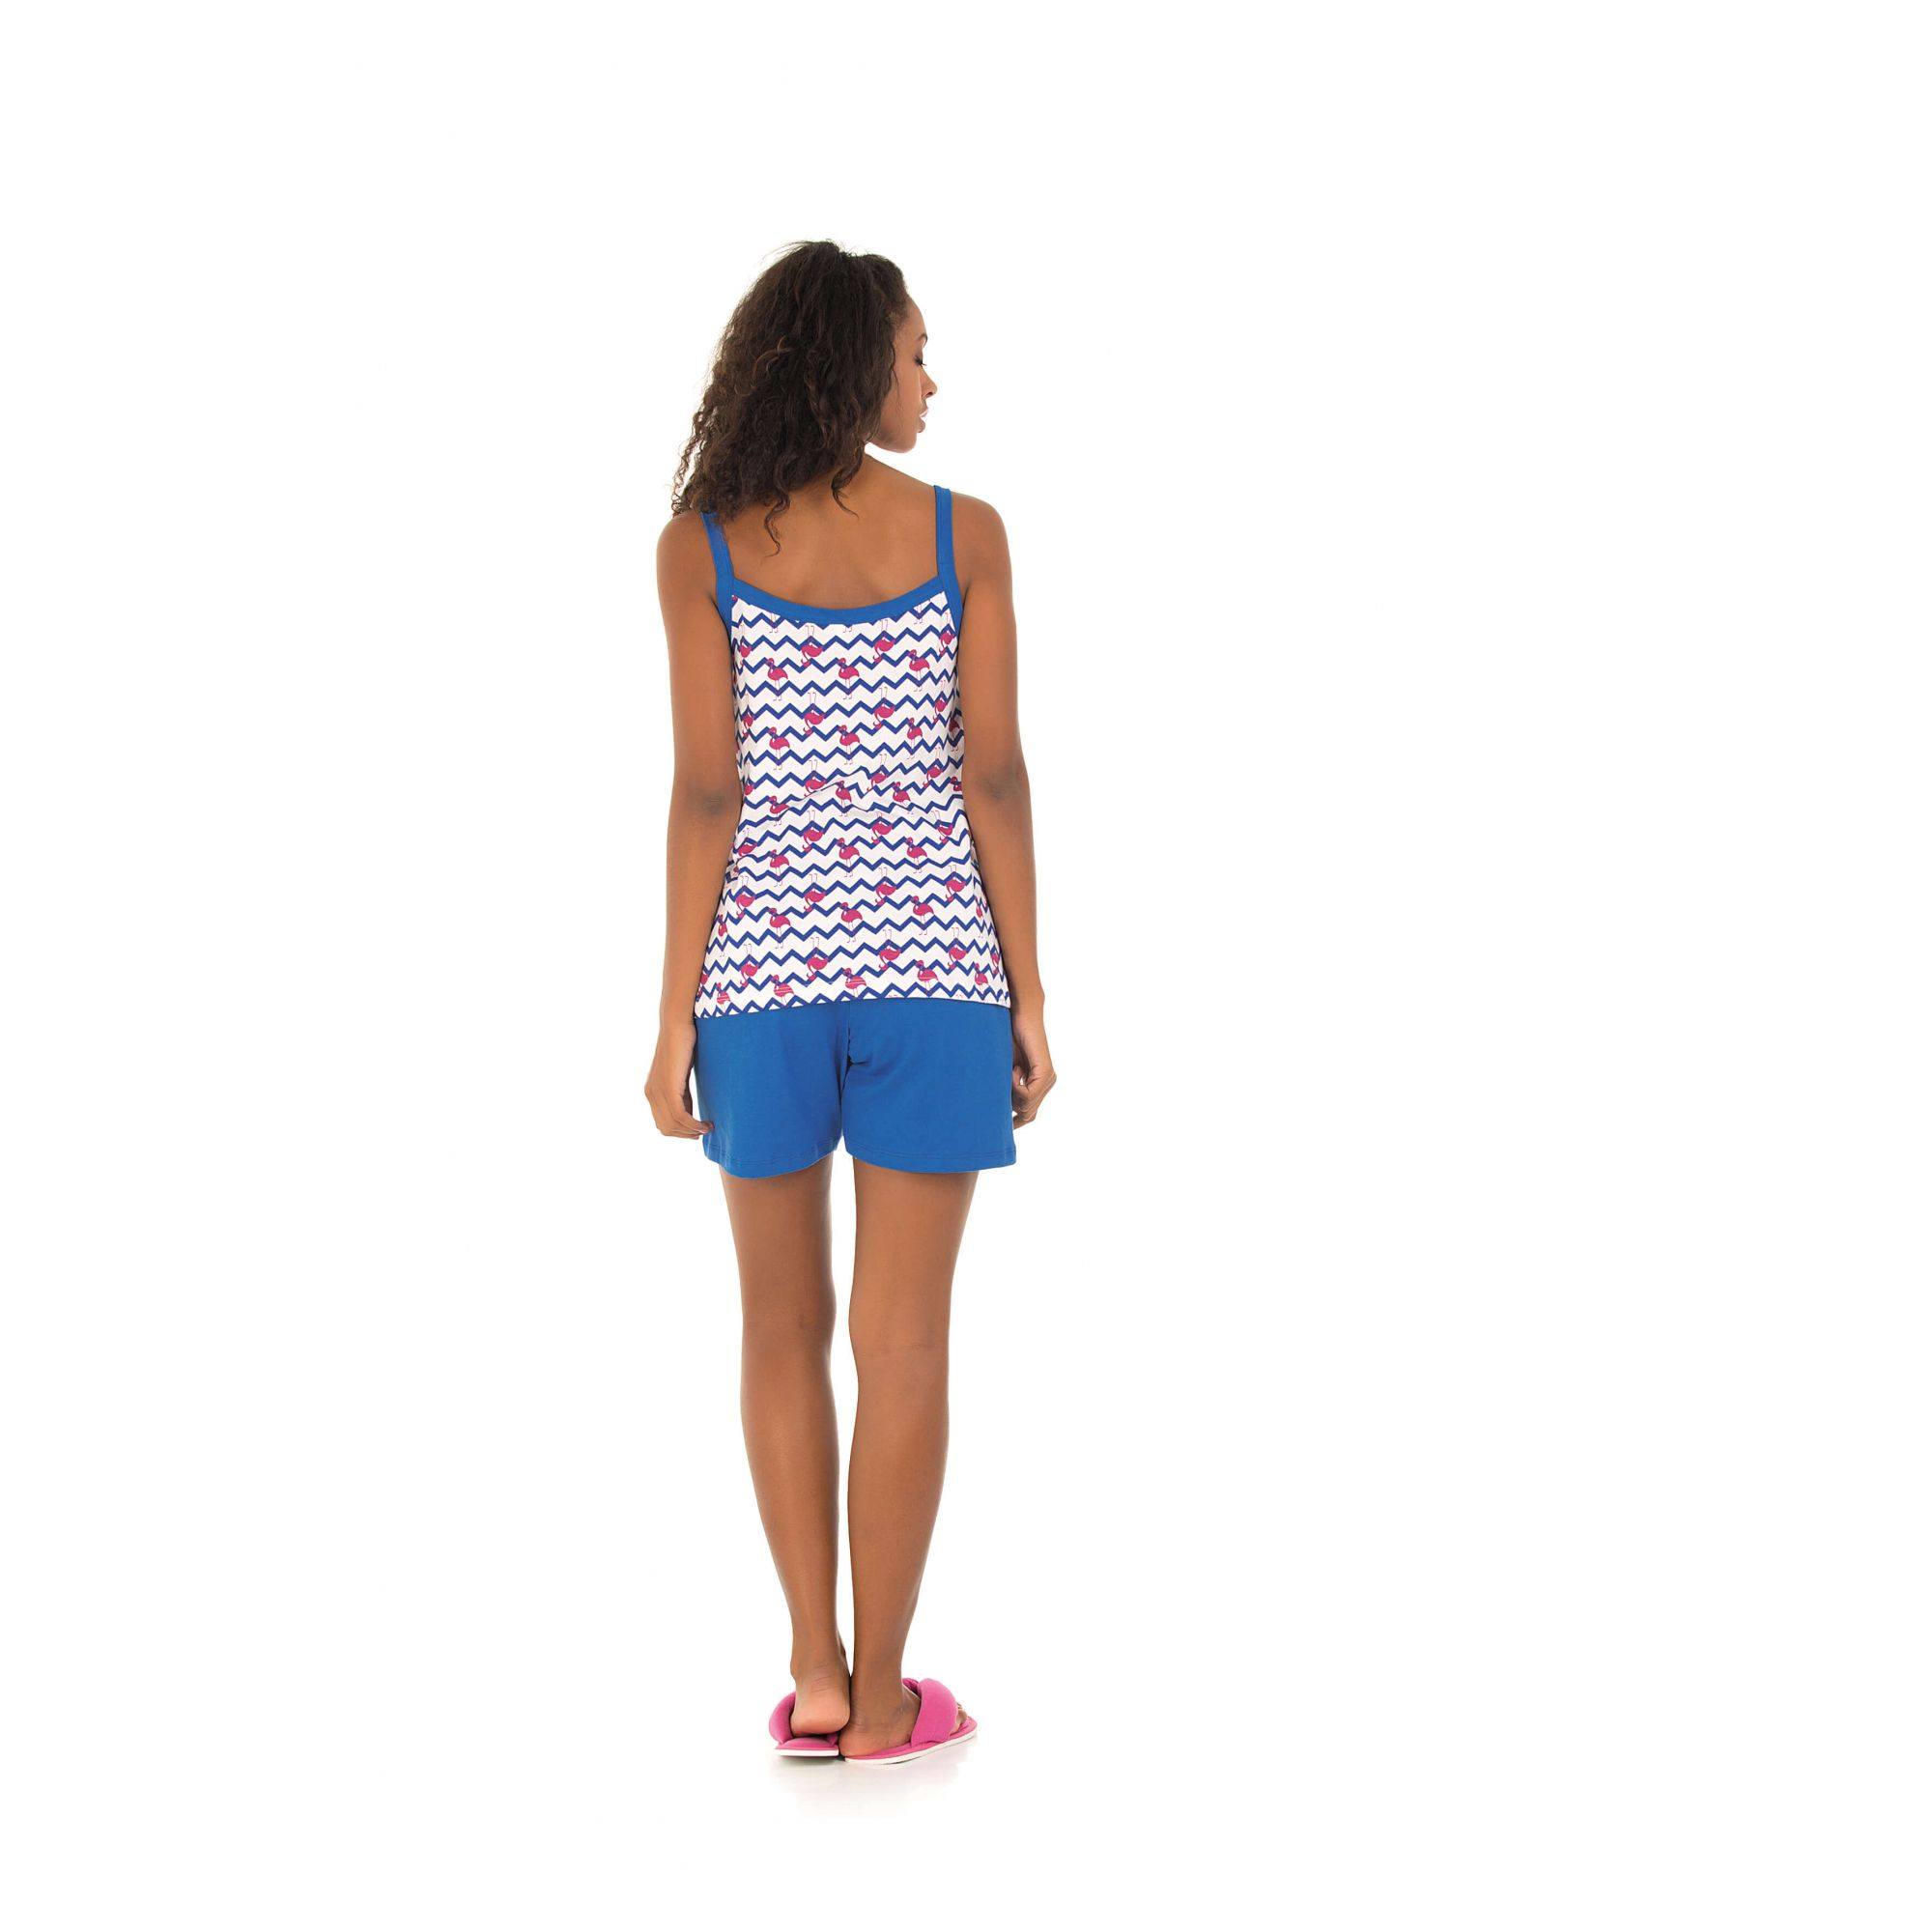 114/B - Short Doll Maternidade Flamingo